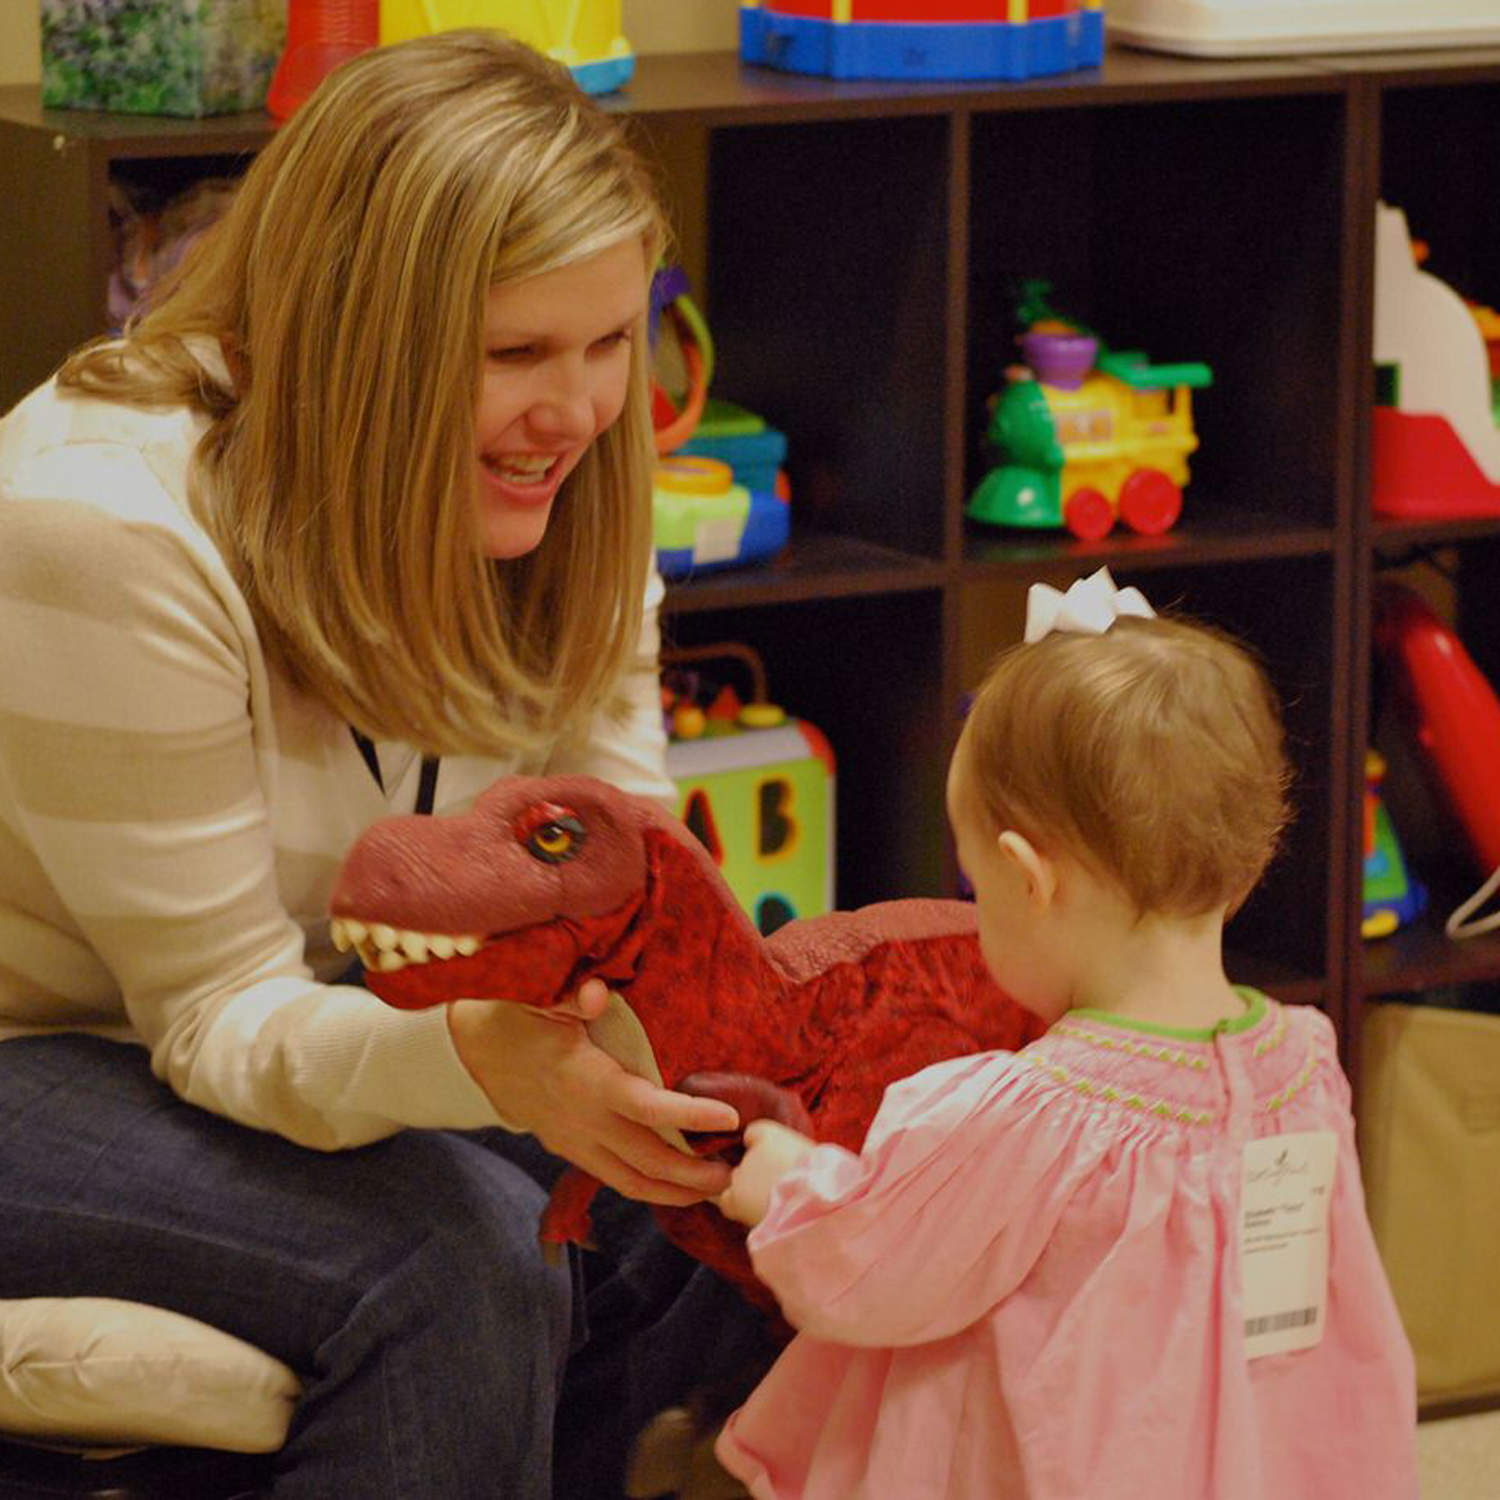 Nursery   (o - 23mo.)  Our nursery classes are designed to minister to infants and toddlers from birth to two years. While parents enjoy our weekend services, our team creates a positive church experience that introduces them to the love of Jesus.